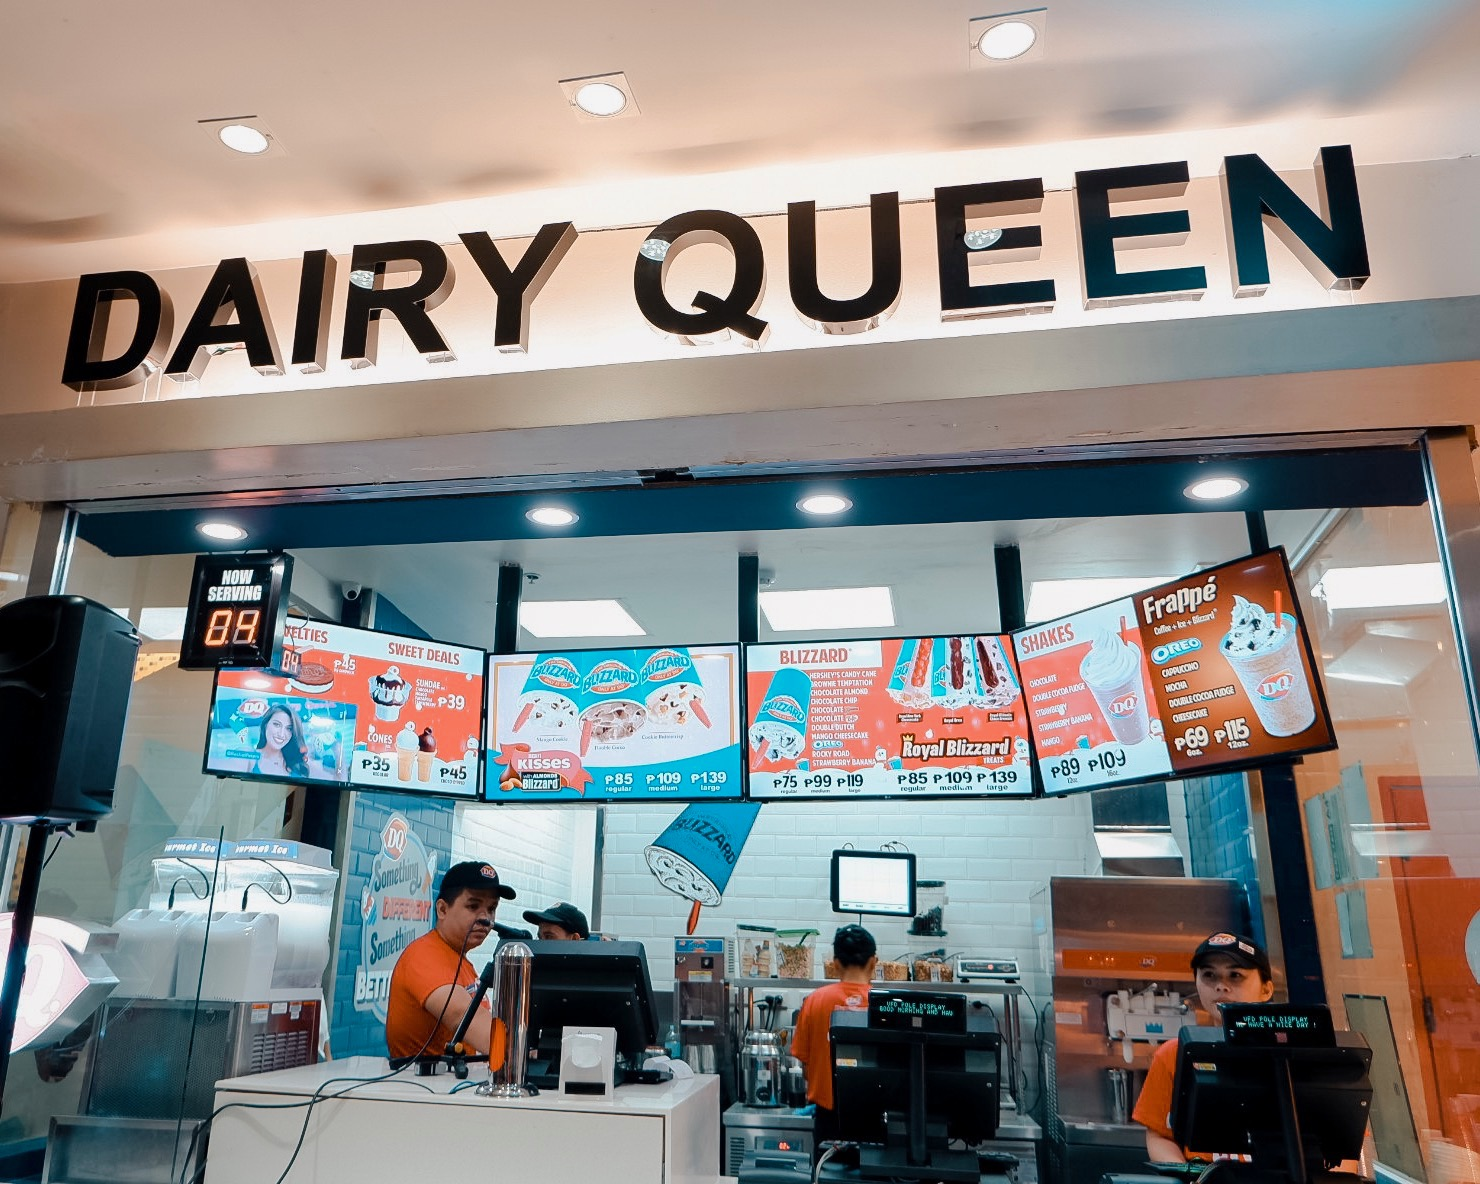 Dairy Queen Ice Cream: Turning the Cebuanos' World Upside Down